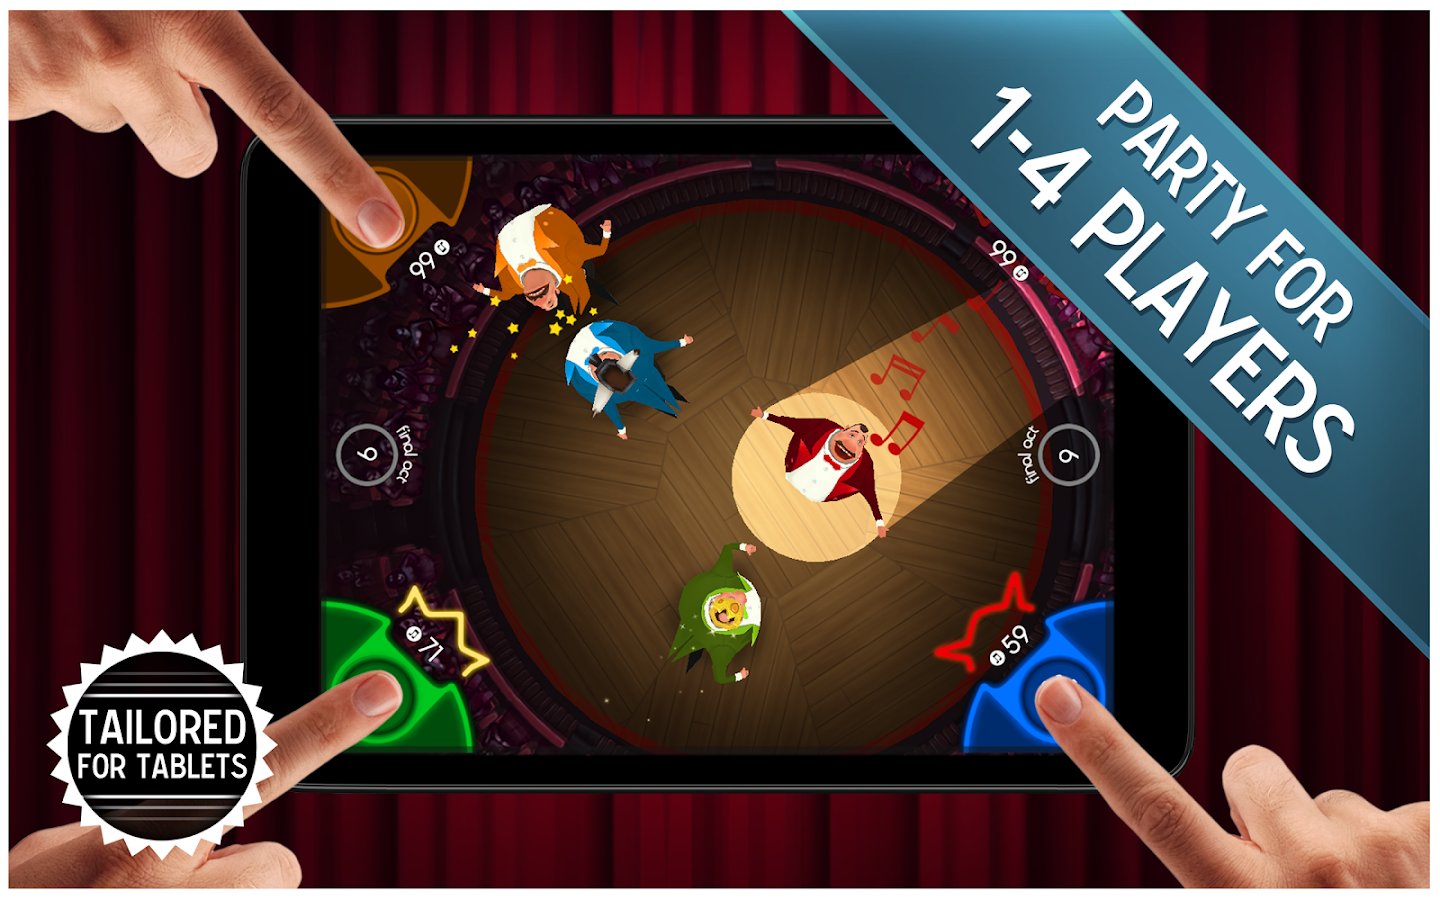 King of Opera - Party Game! Screenshot 5